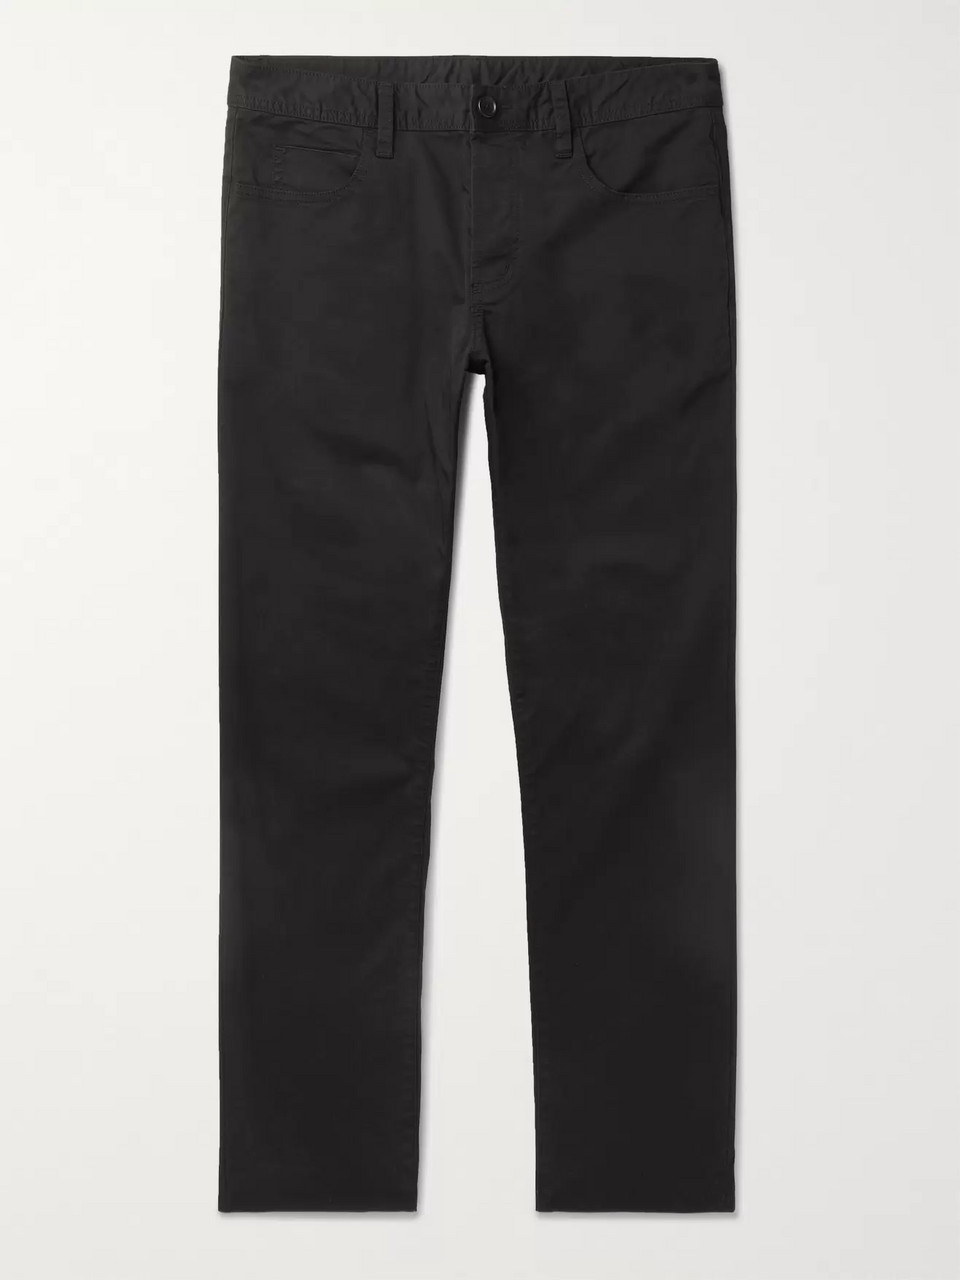 James Perse Black Slim-Fit Cotton-Twill Trousers